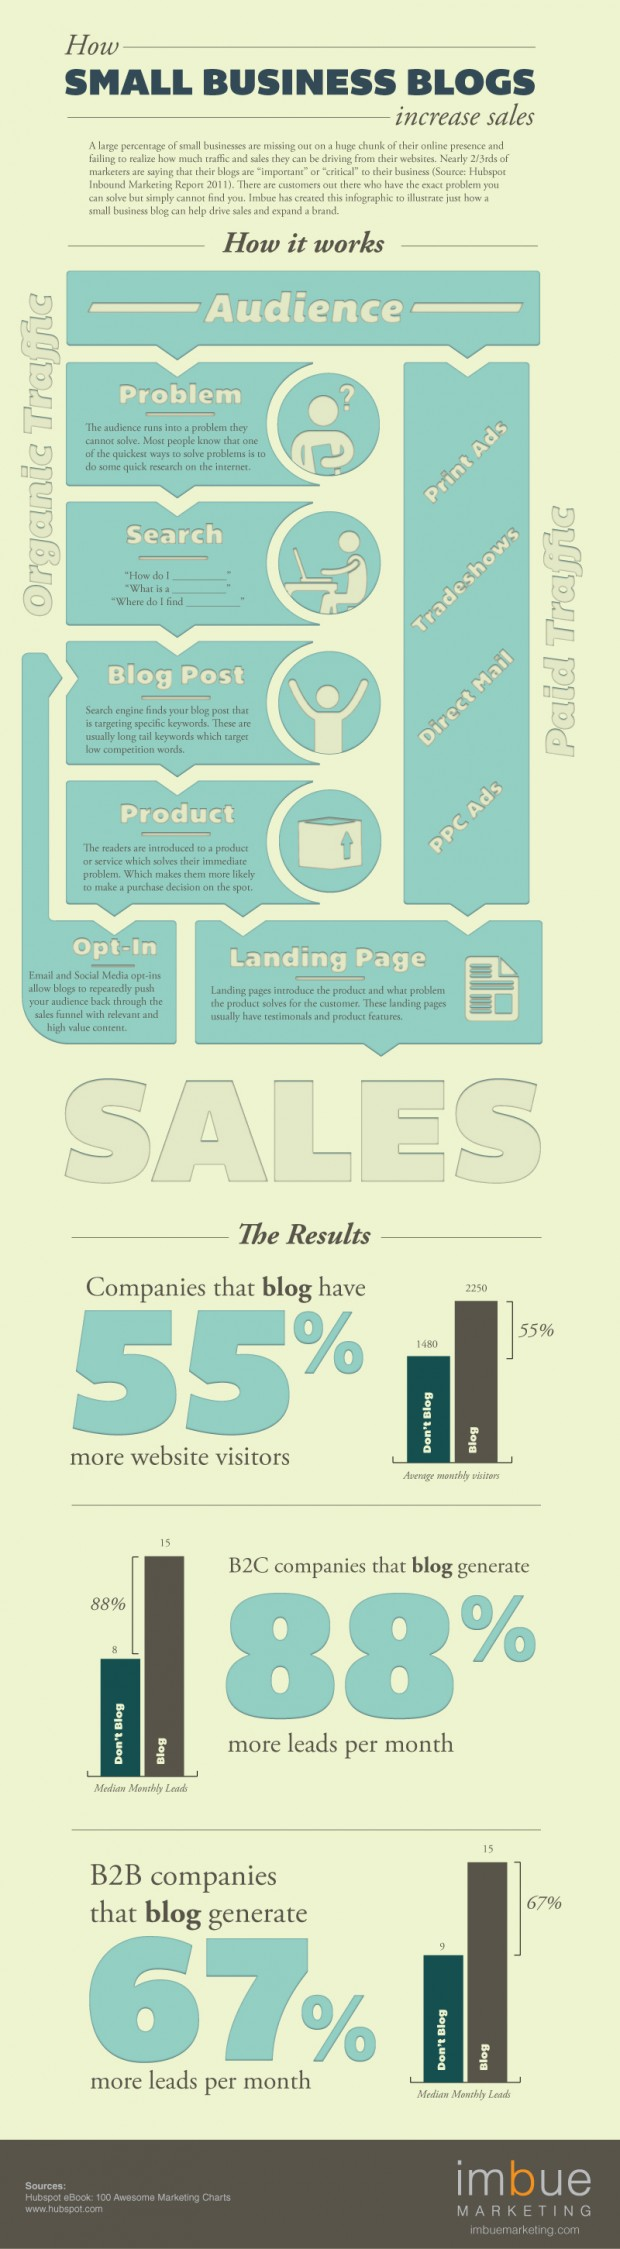 Infographic - How Small Business Blogs Increase Sales